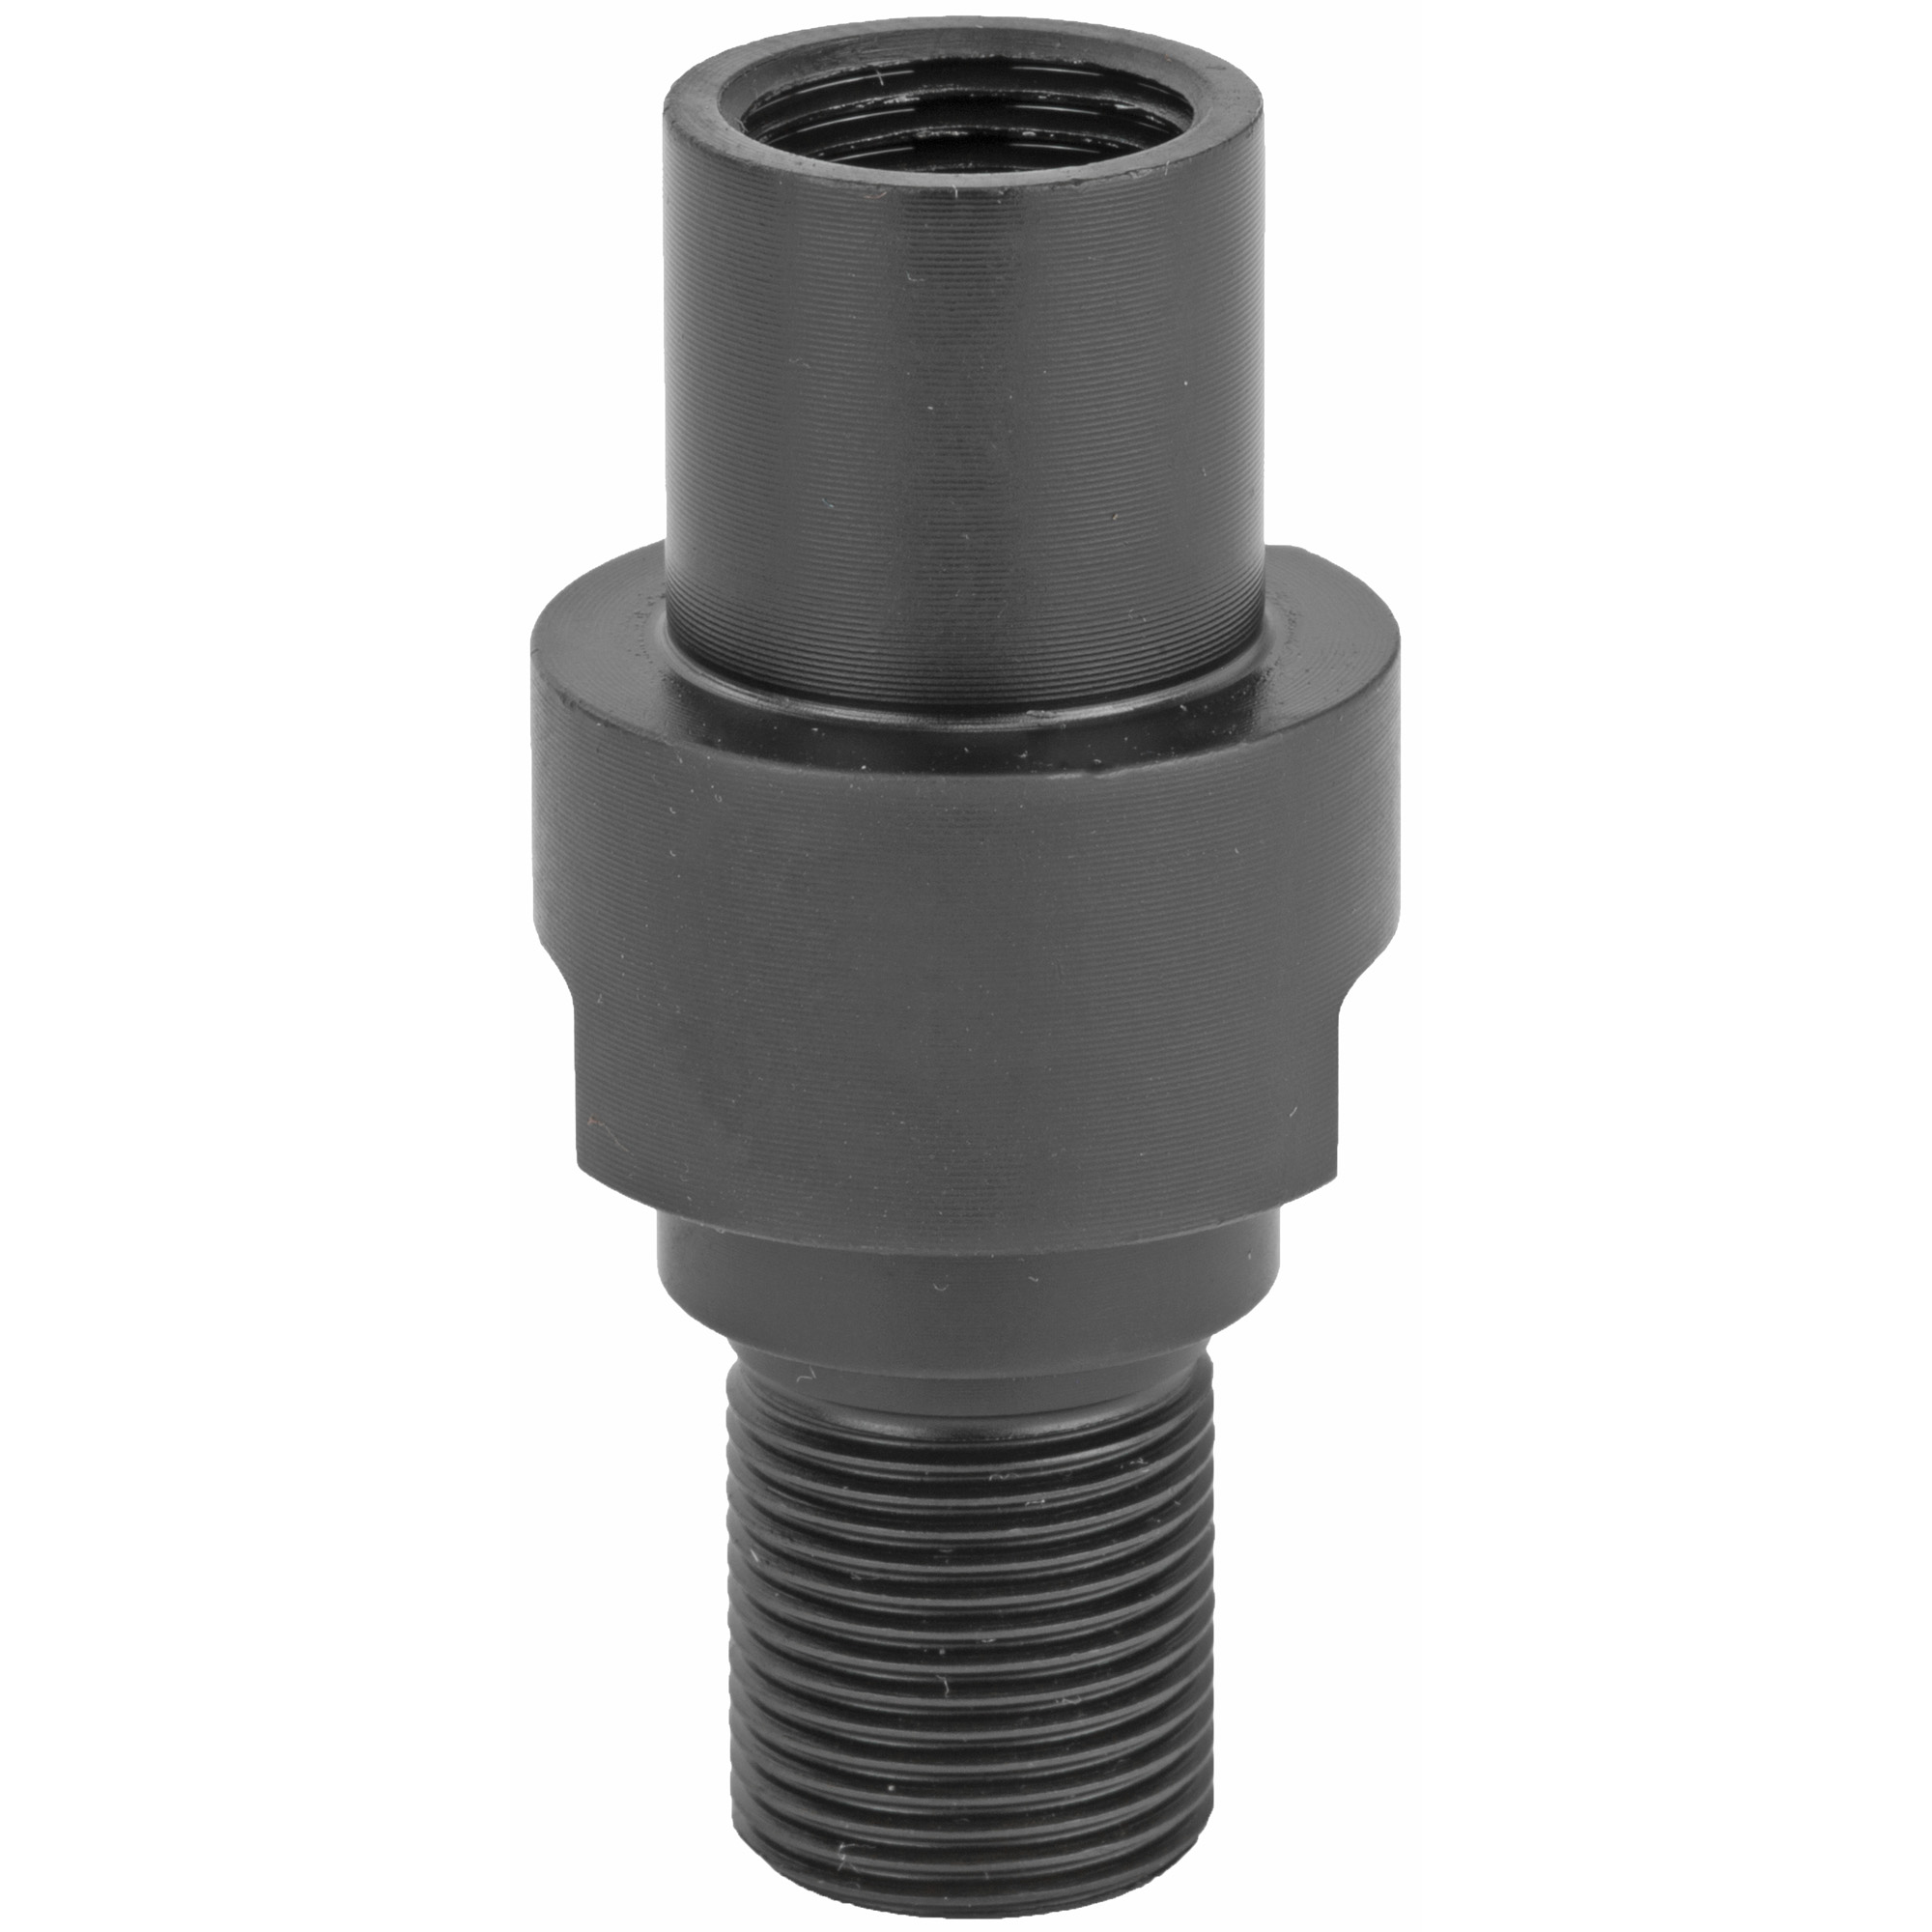 """Use this with a short barrel on your PS90 SBR build to attach your favorite muzzle device. Adapts the standard M12 x 1.0 LH threads of the PS90 to 1/2""""-28 which is compatible with most 5.56/.223 muzzle devices."""